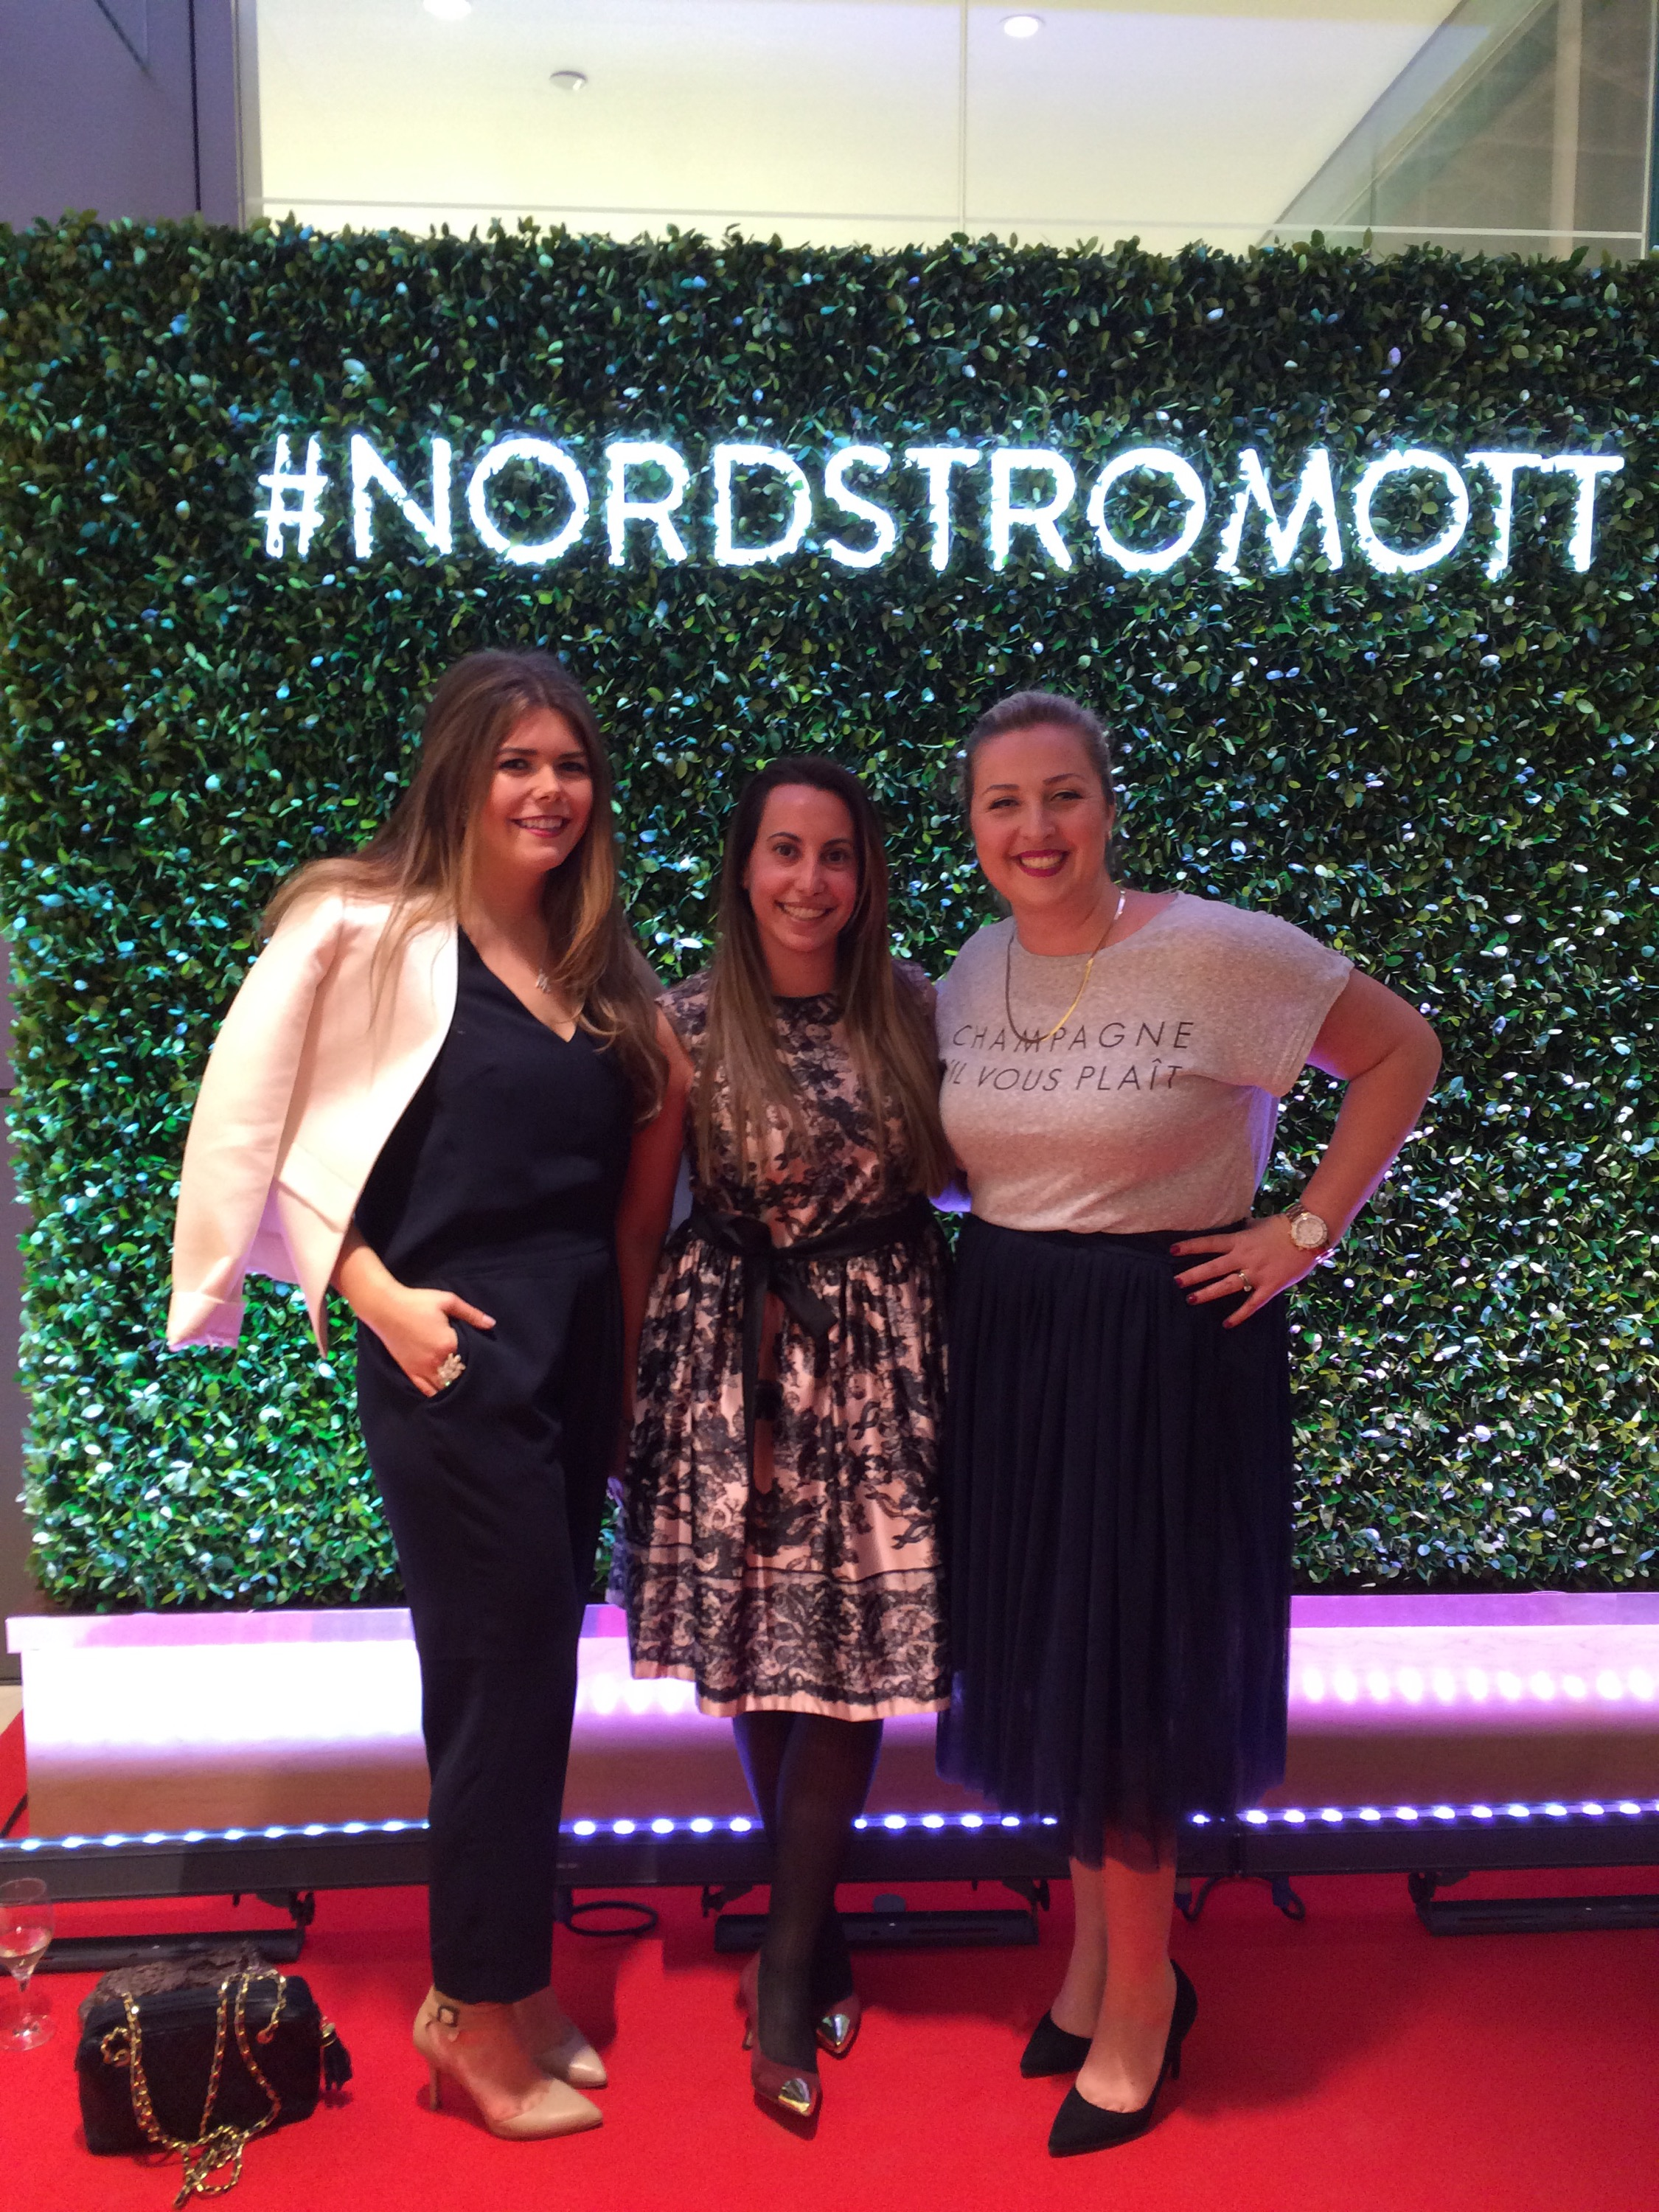 Chantal Sarkisian Plus Size fashion Blog Ottawa Nordstrom Gala Mode XLusive